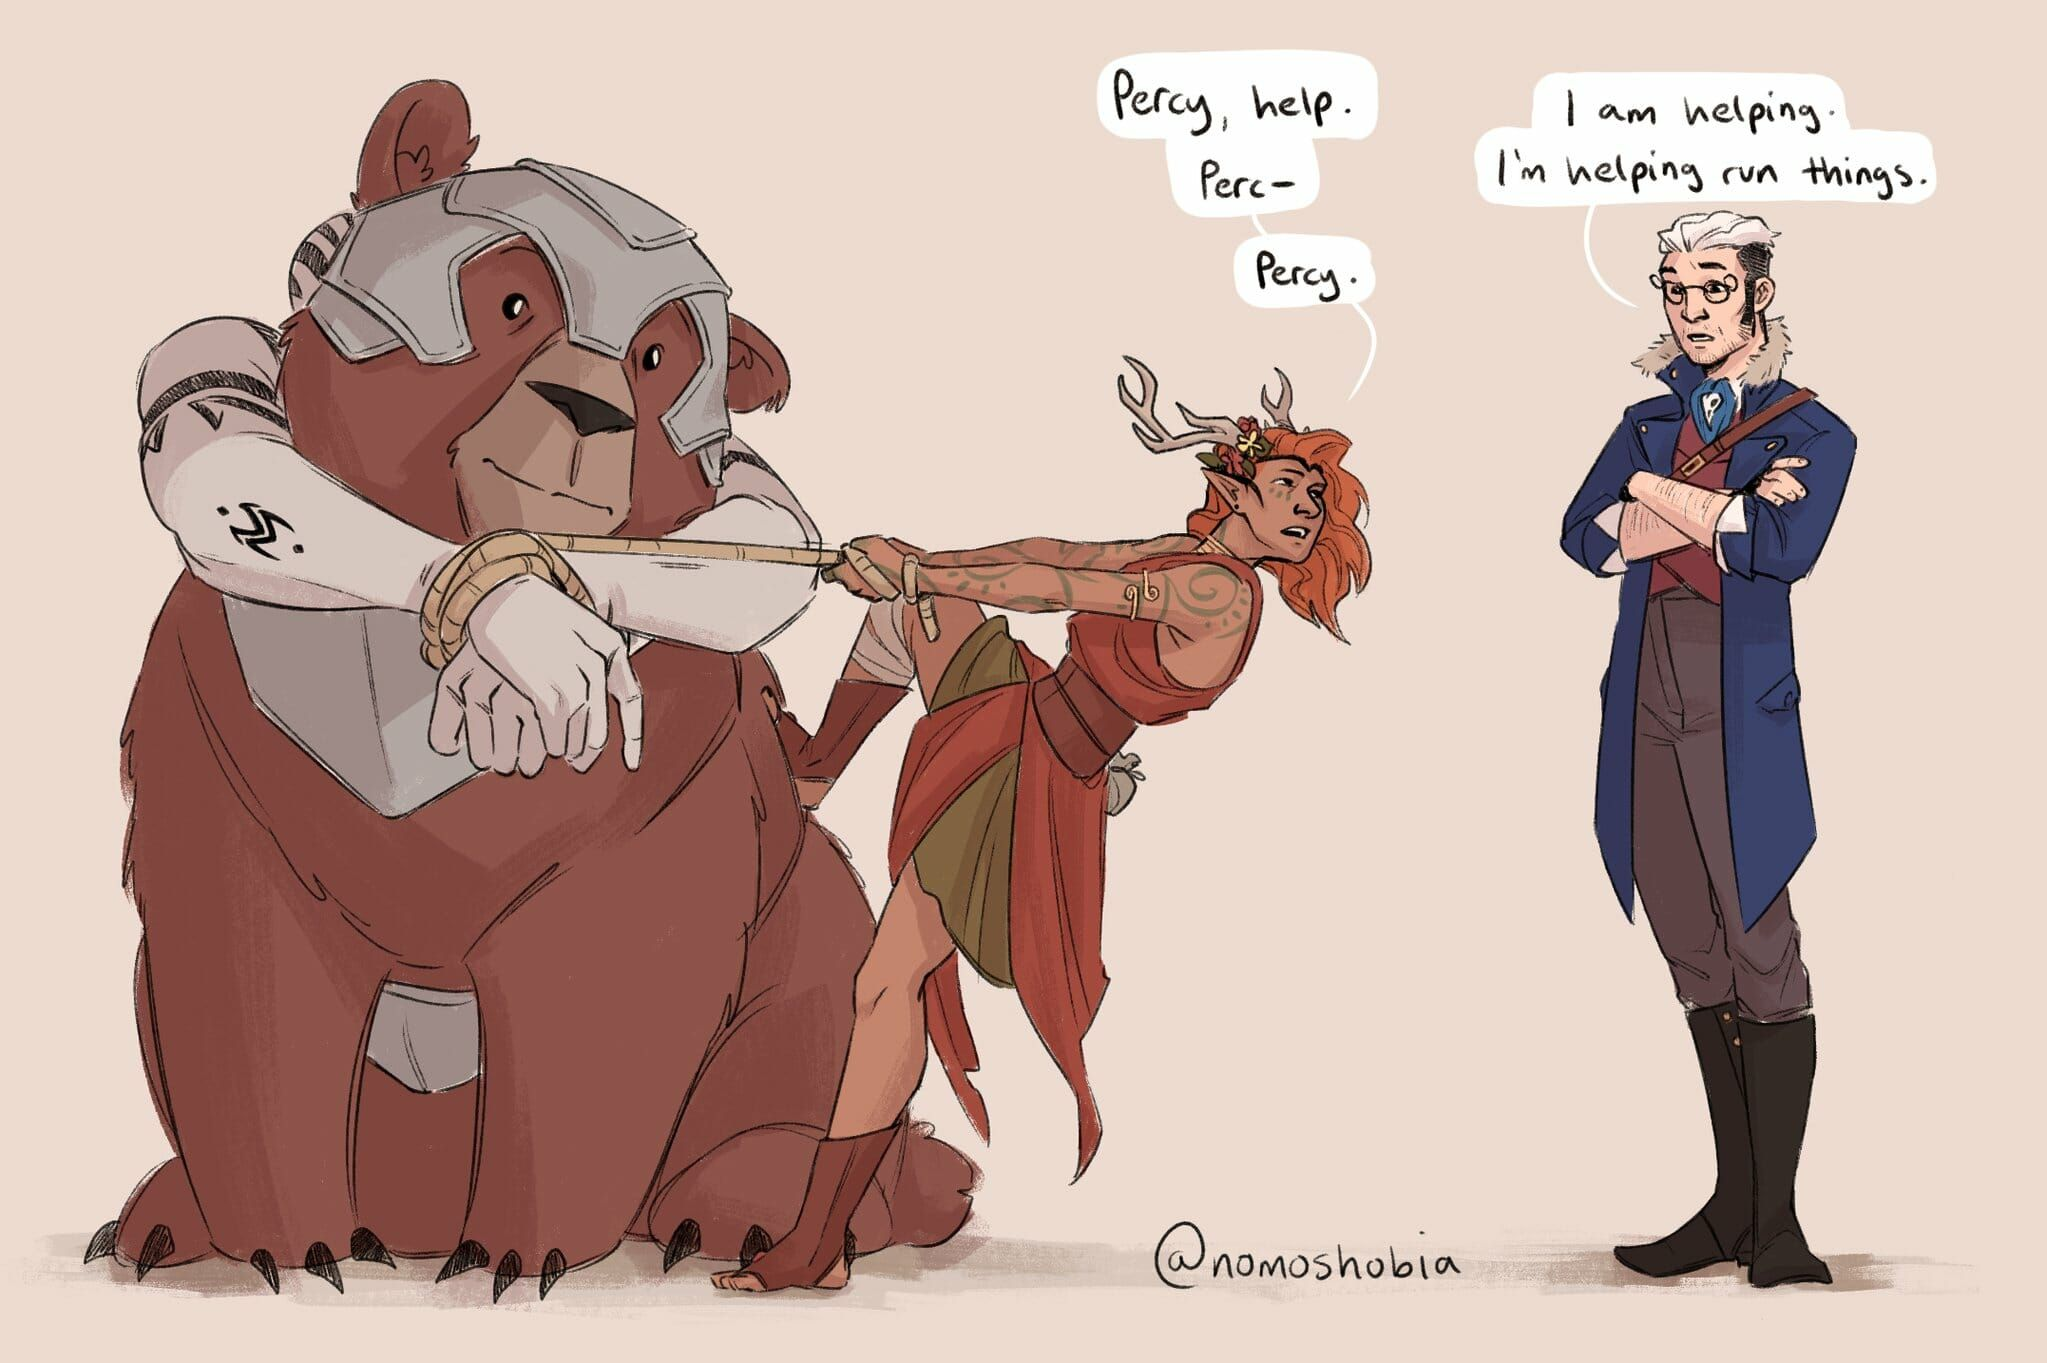 Fan Art Gallery The Search For Grog Critical Role Critical Role Characters Critical Role Percy Critical Role Critical role is geek & sundry's live dungeons & dragons show, featuring dungeon master matthew mercer and his troupe of fellow voice actors. for grog critical role